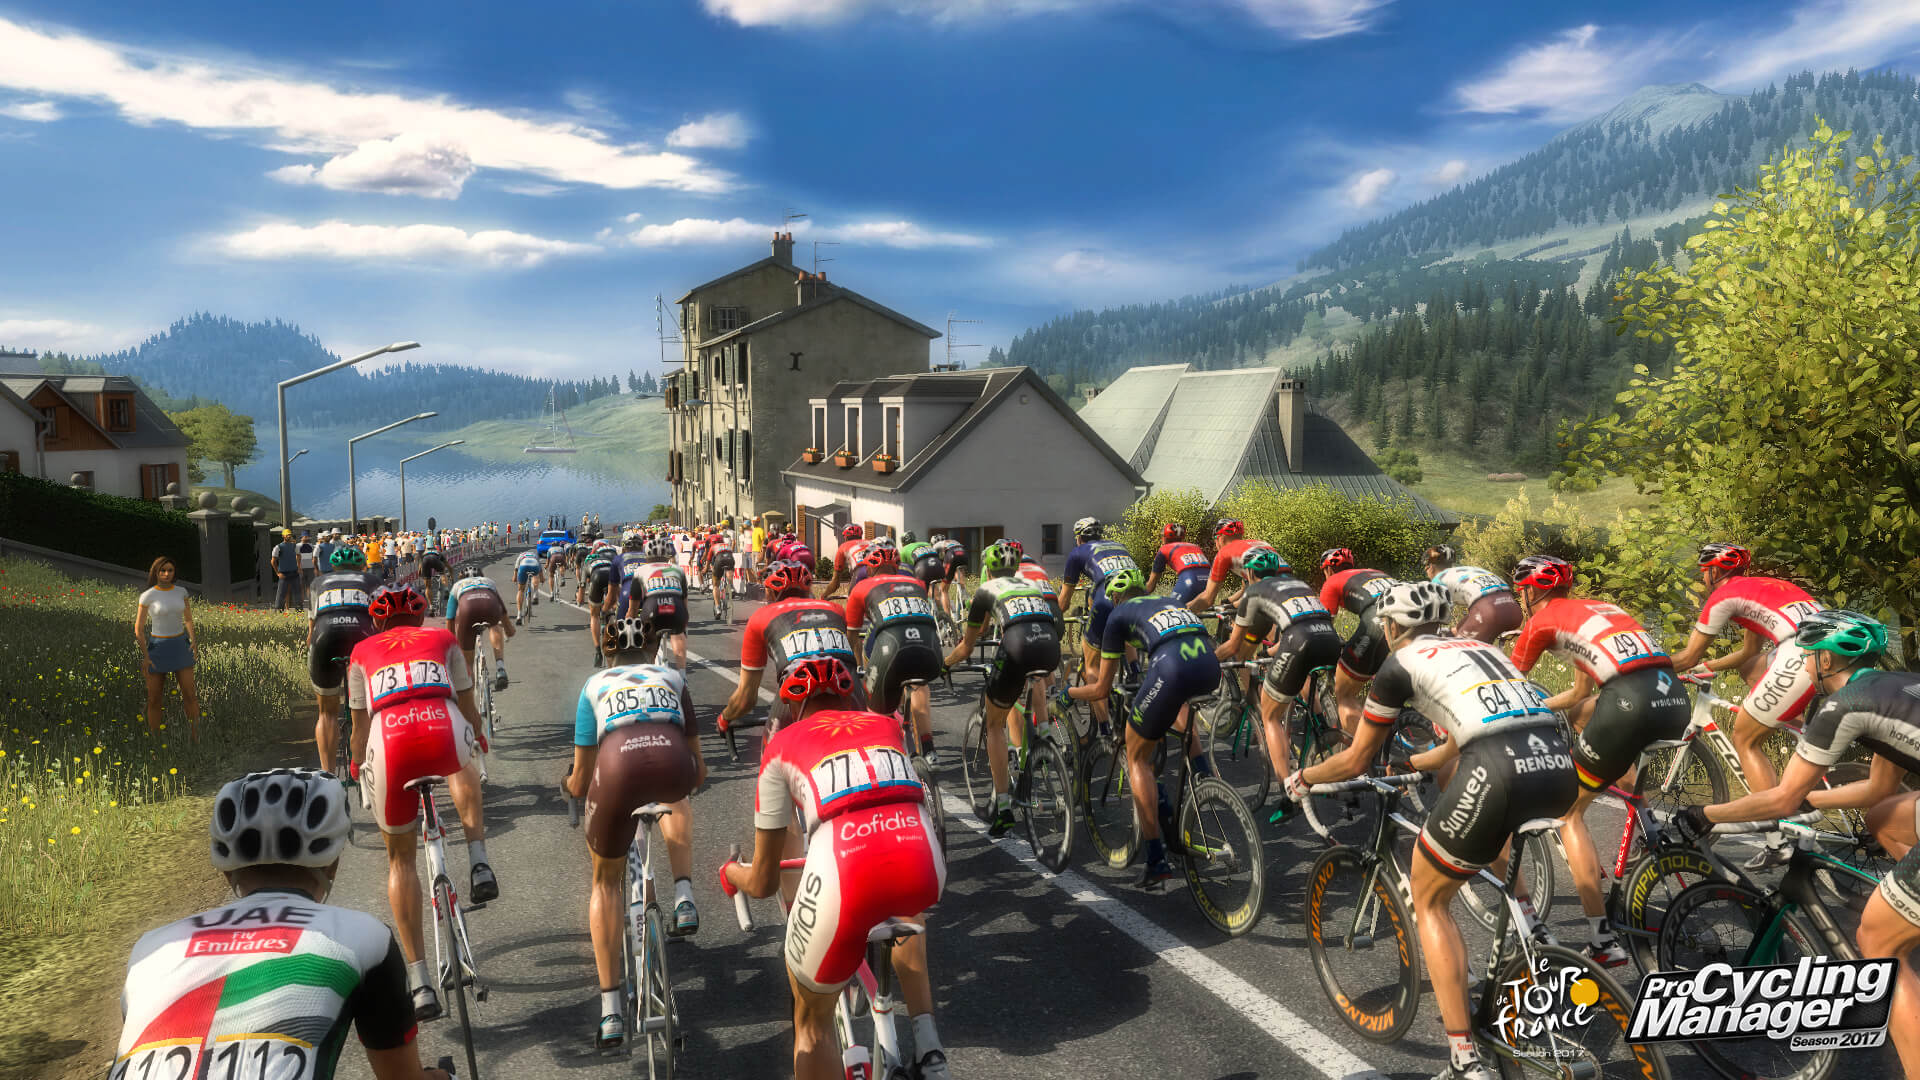 133ddc854 Pro Cycling Manager 2017 - Focus Home Interactive